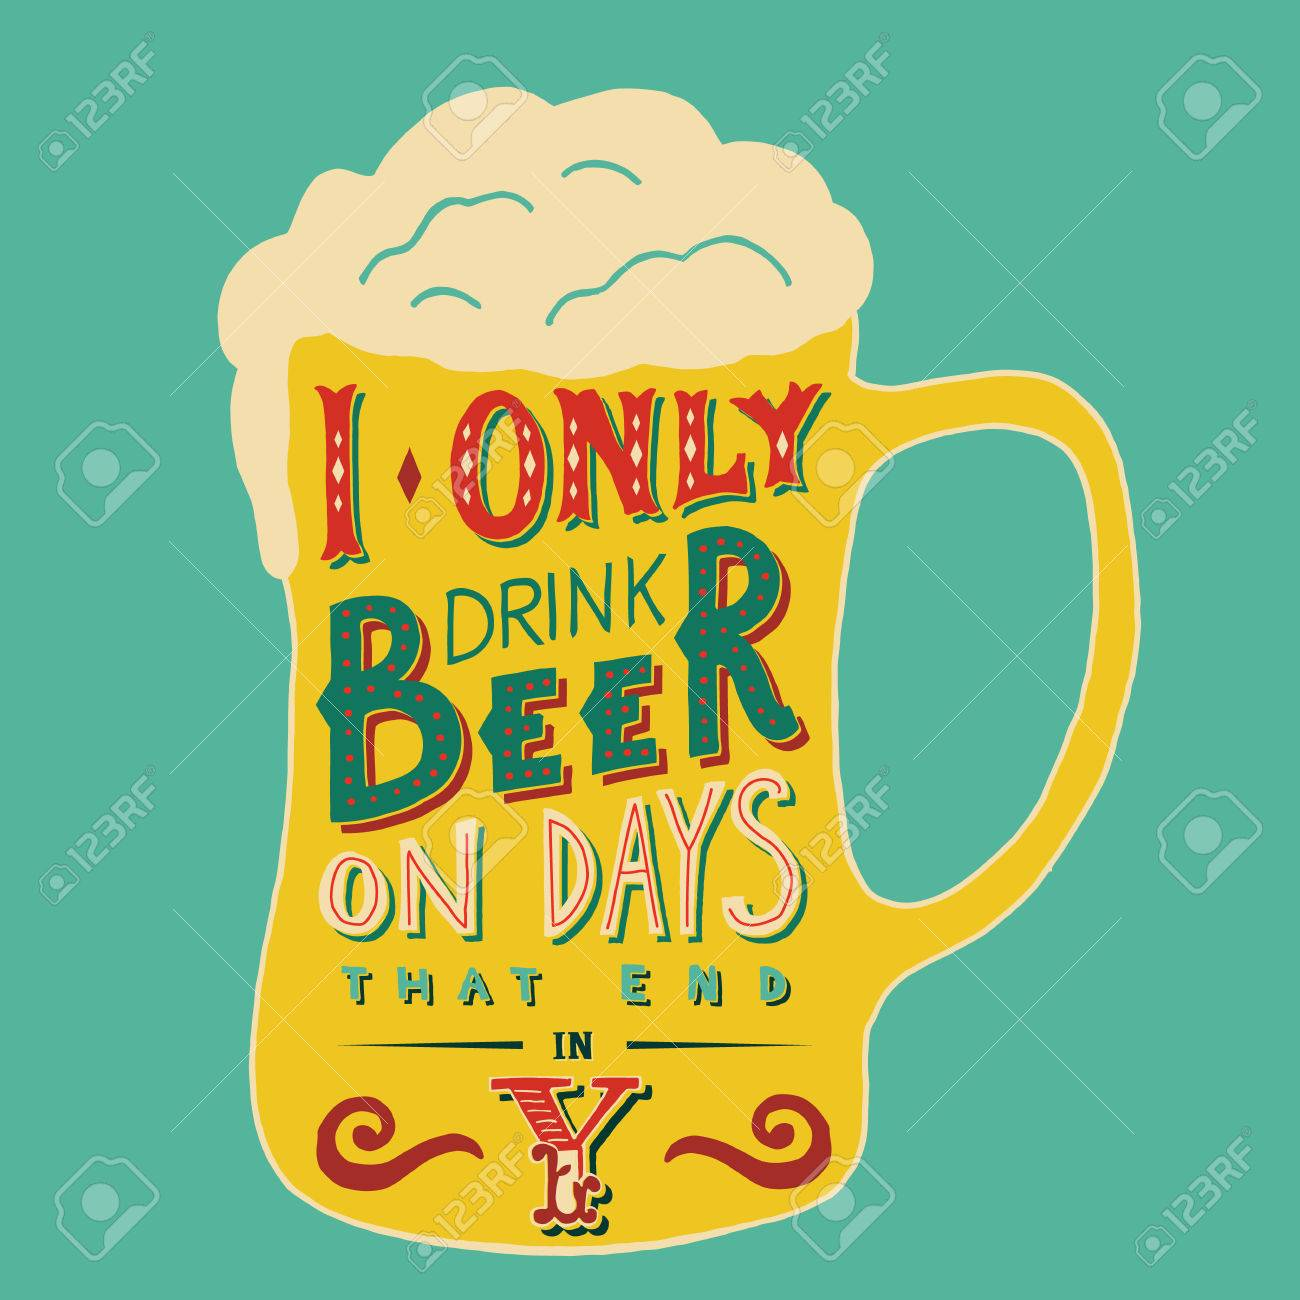 Poster design handmade - Poster Design Handmade I Only Drink Beer On Days That End In Y Handmade Typographic